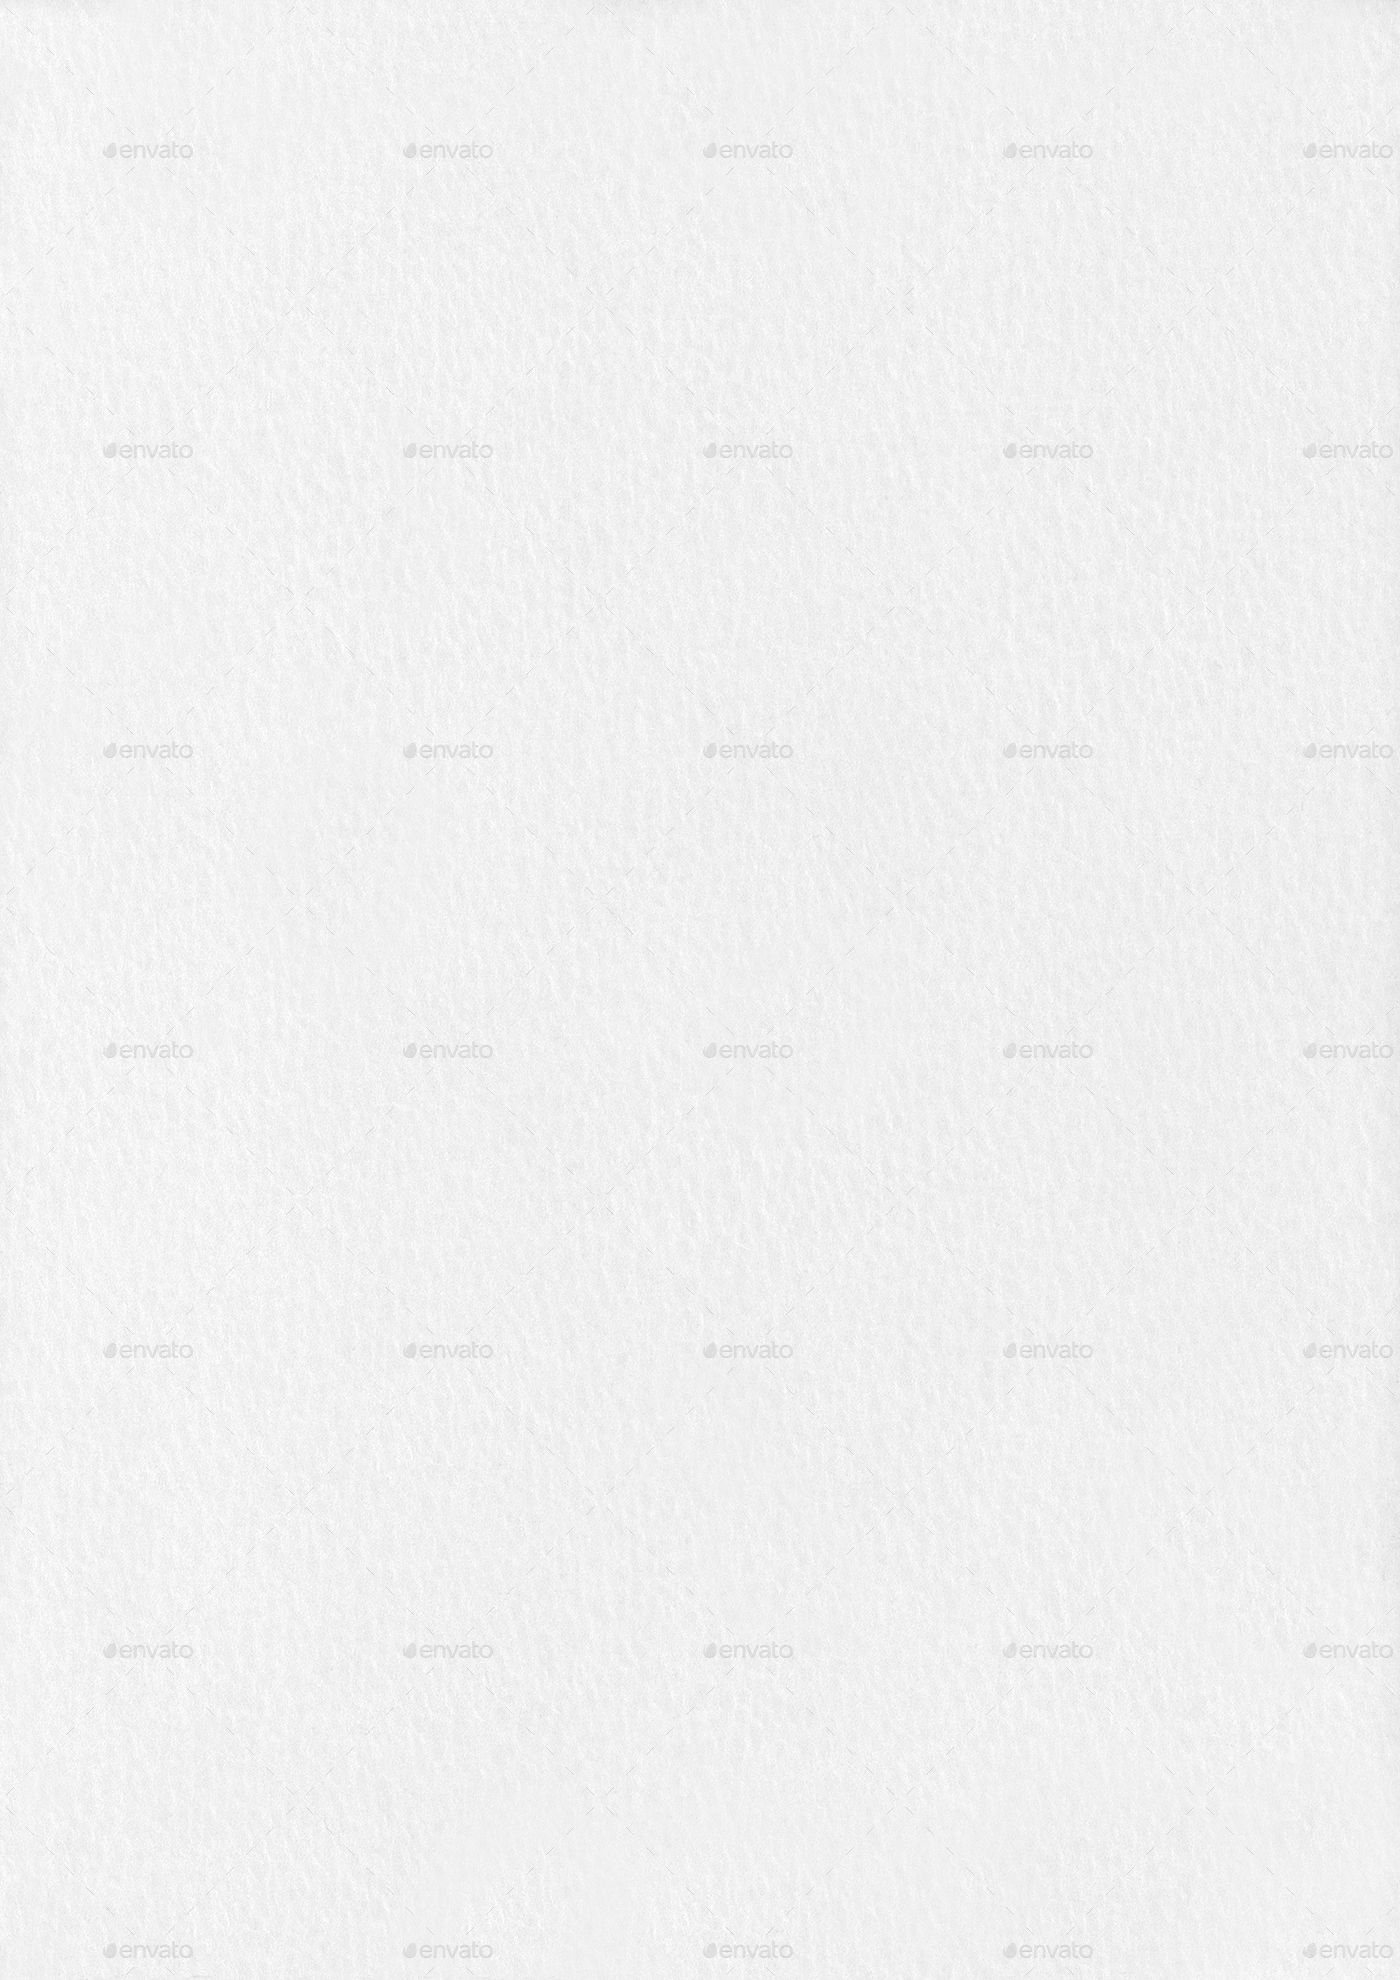 26 White Paper Background Textures by webcombo | GraphicRiver